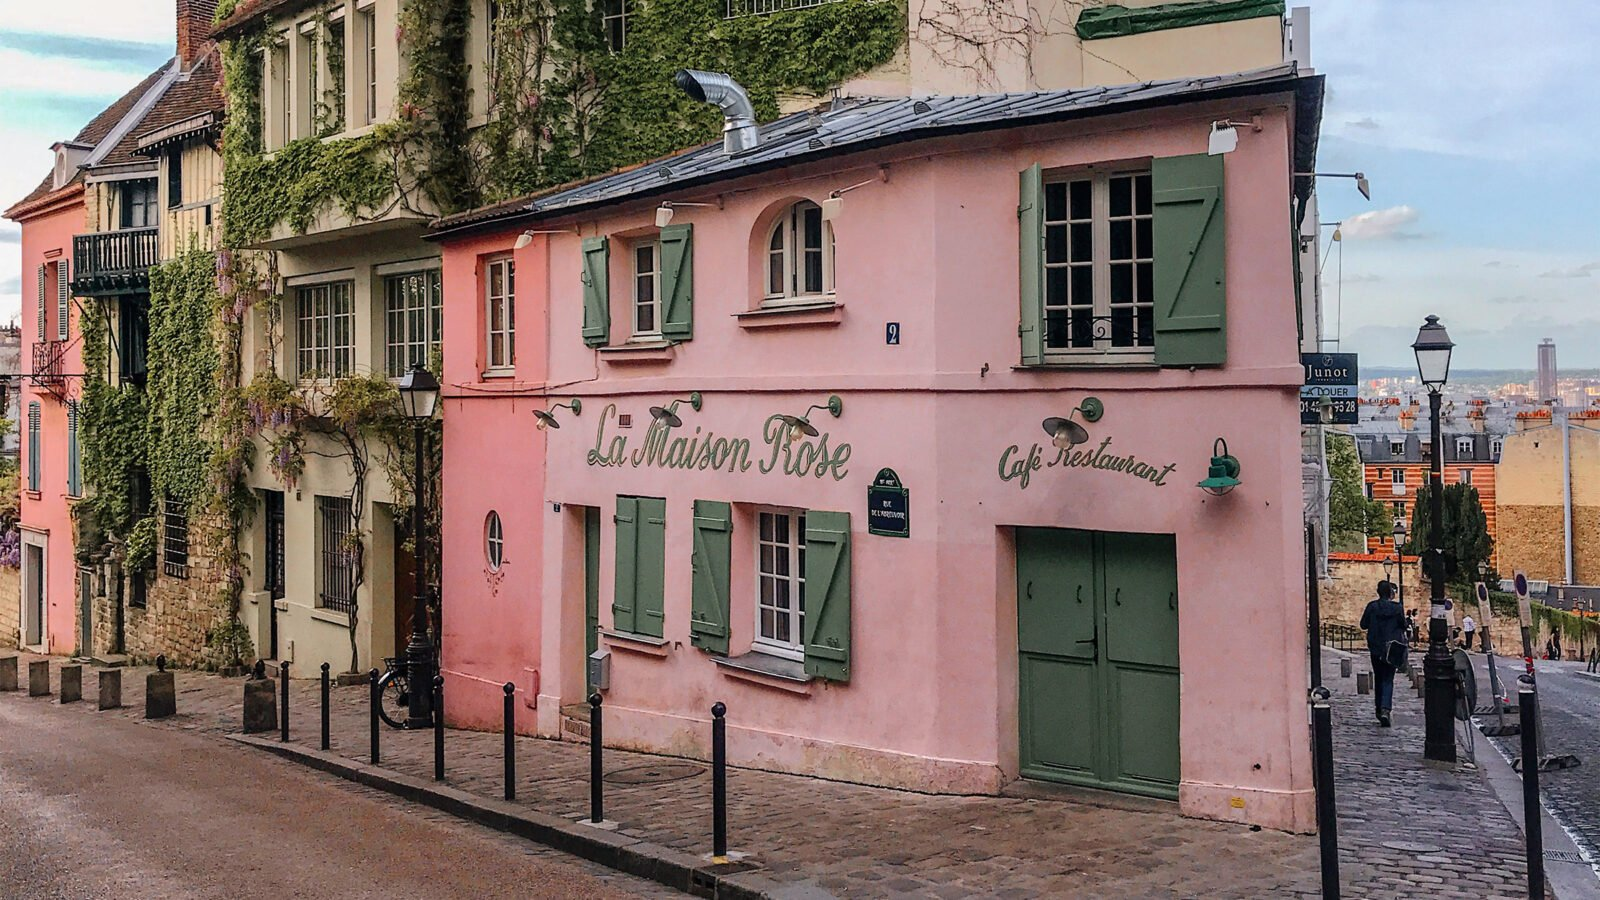 this image shows the Maison Rose in Paris